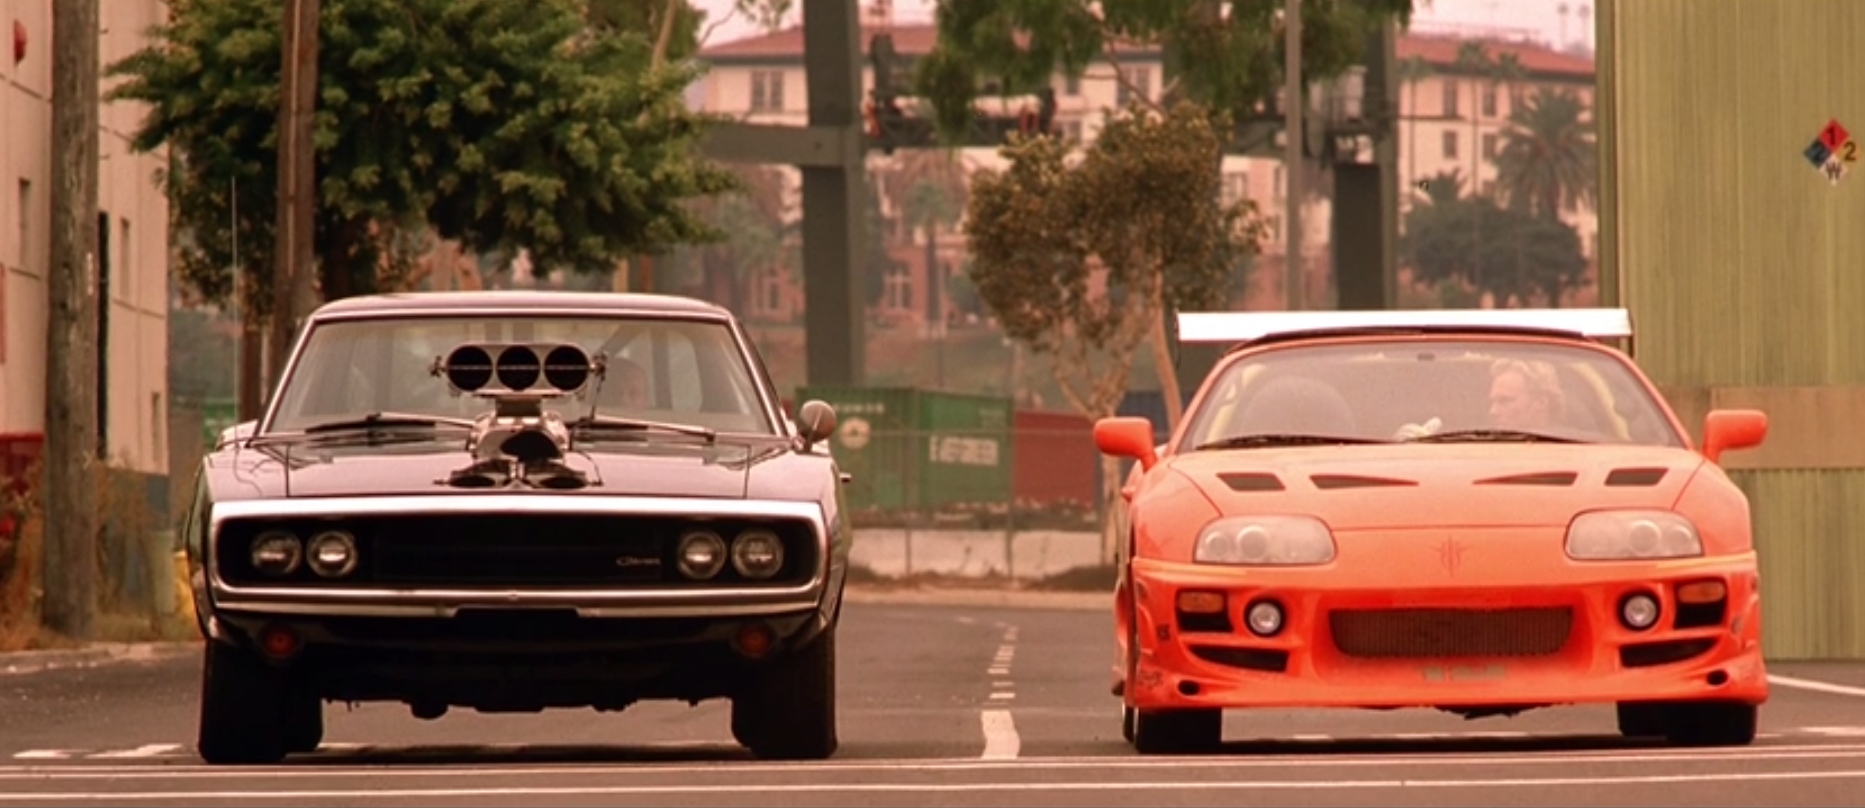 15 fast and the furious cars that vin diesel wishes he could own